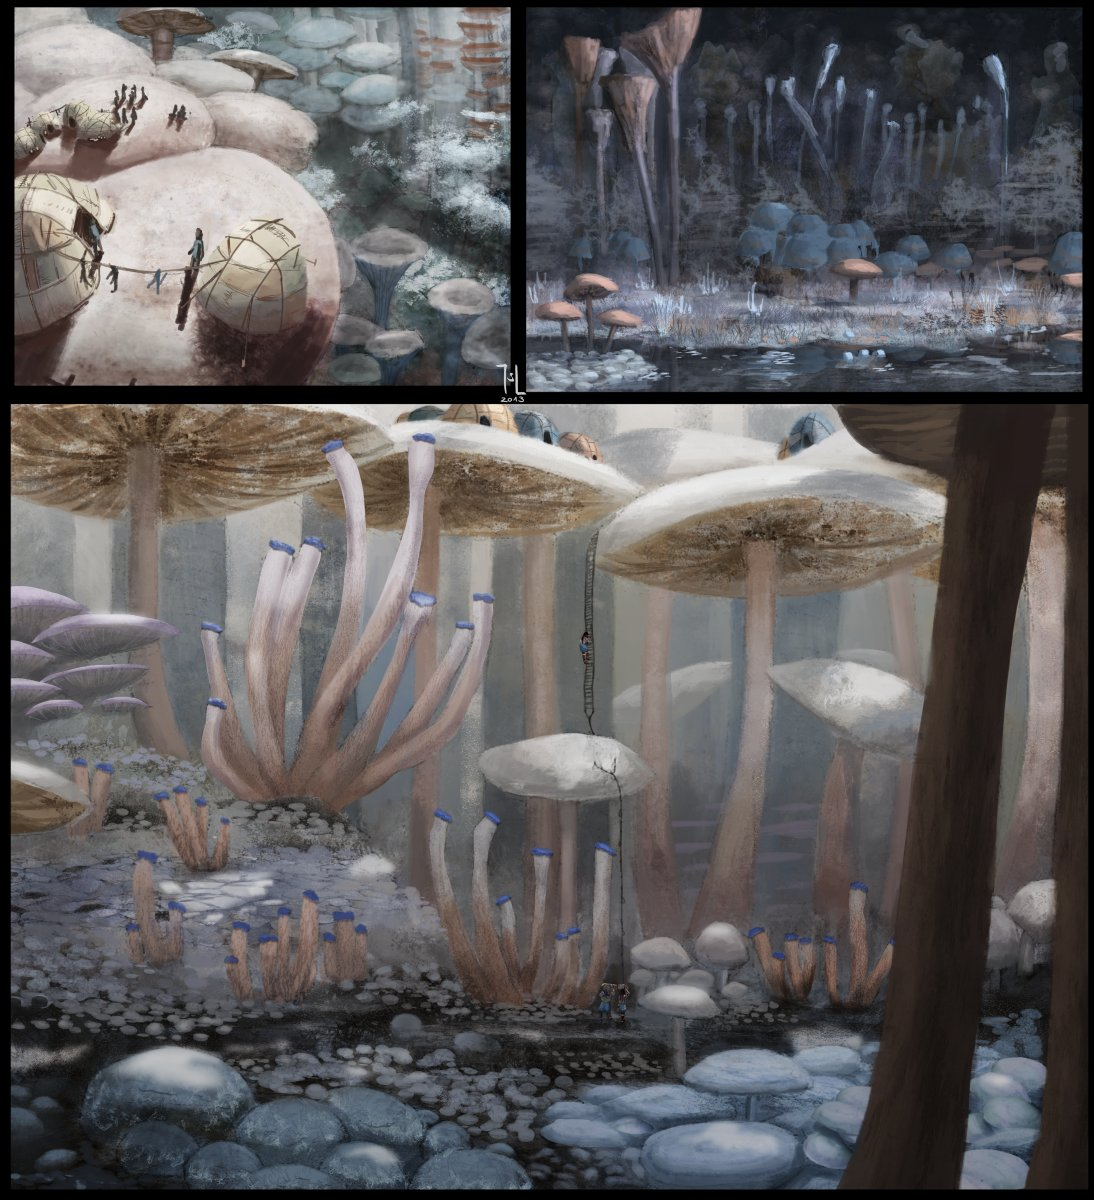 White forest concepts by Ranarh